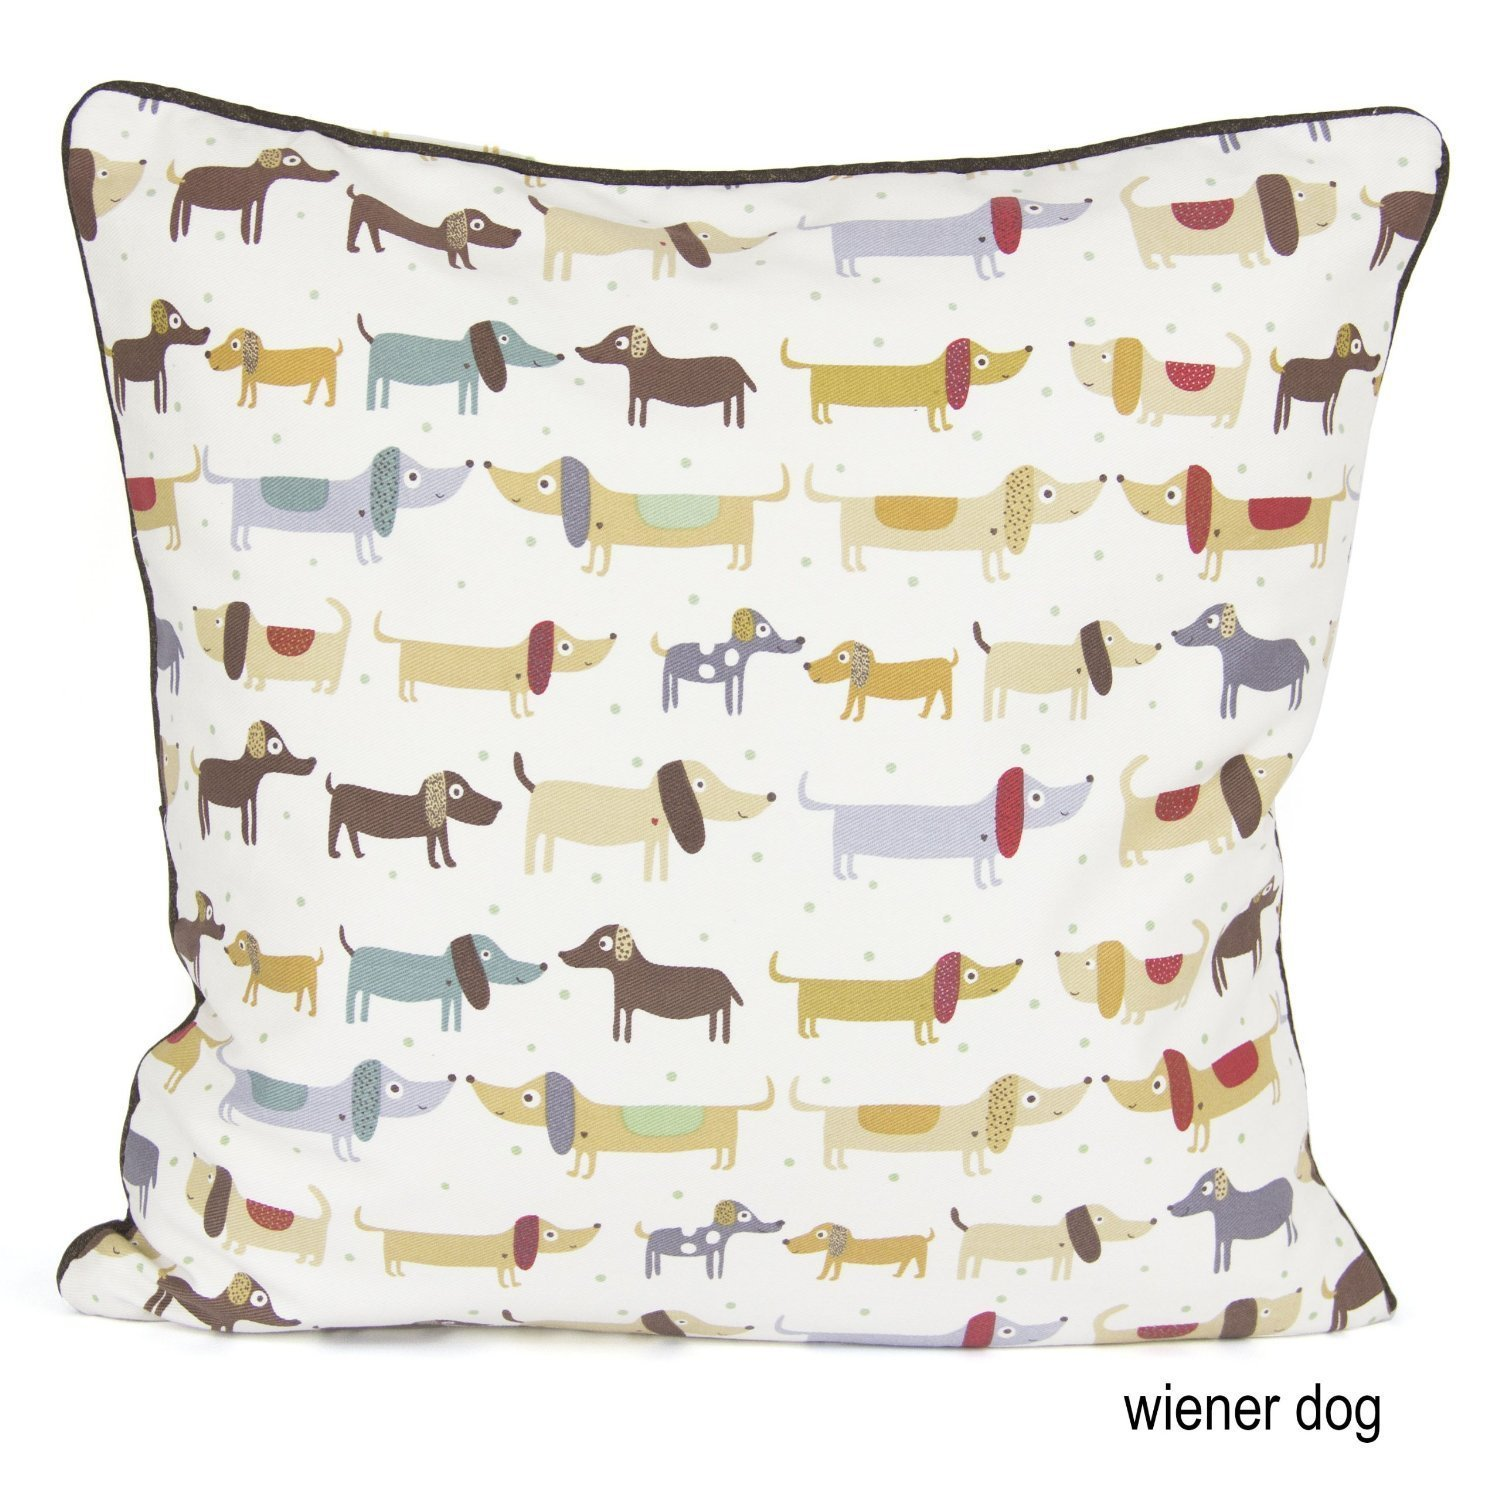 100% Cotton's Brand Designer's Inspired Luxury Cushion Cover Design Wiener Dog Size 18